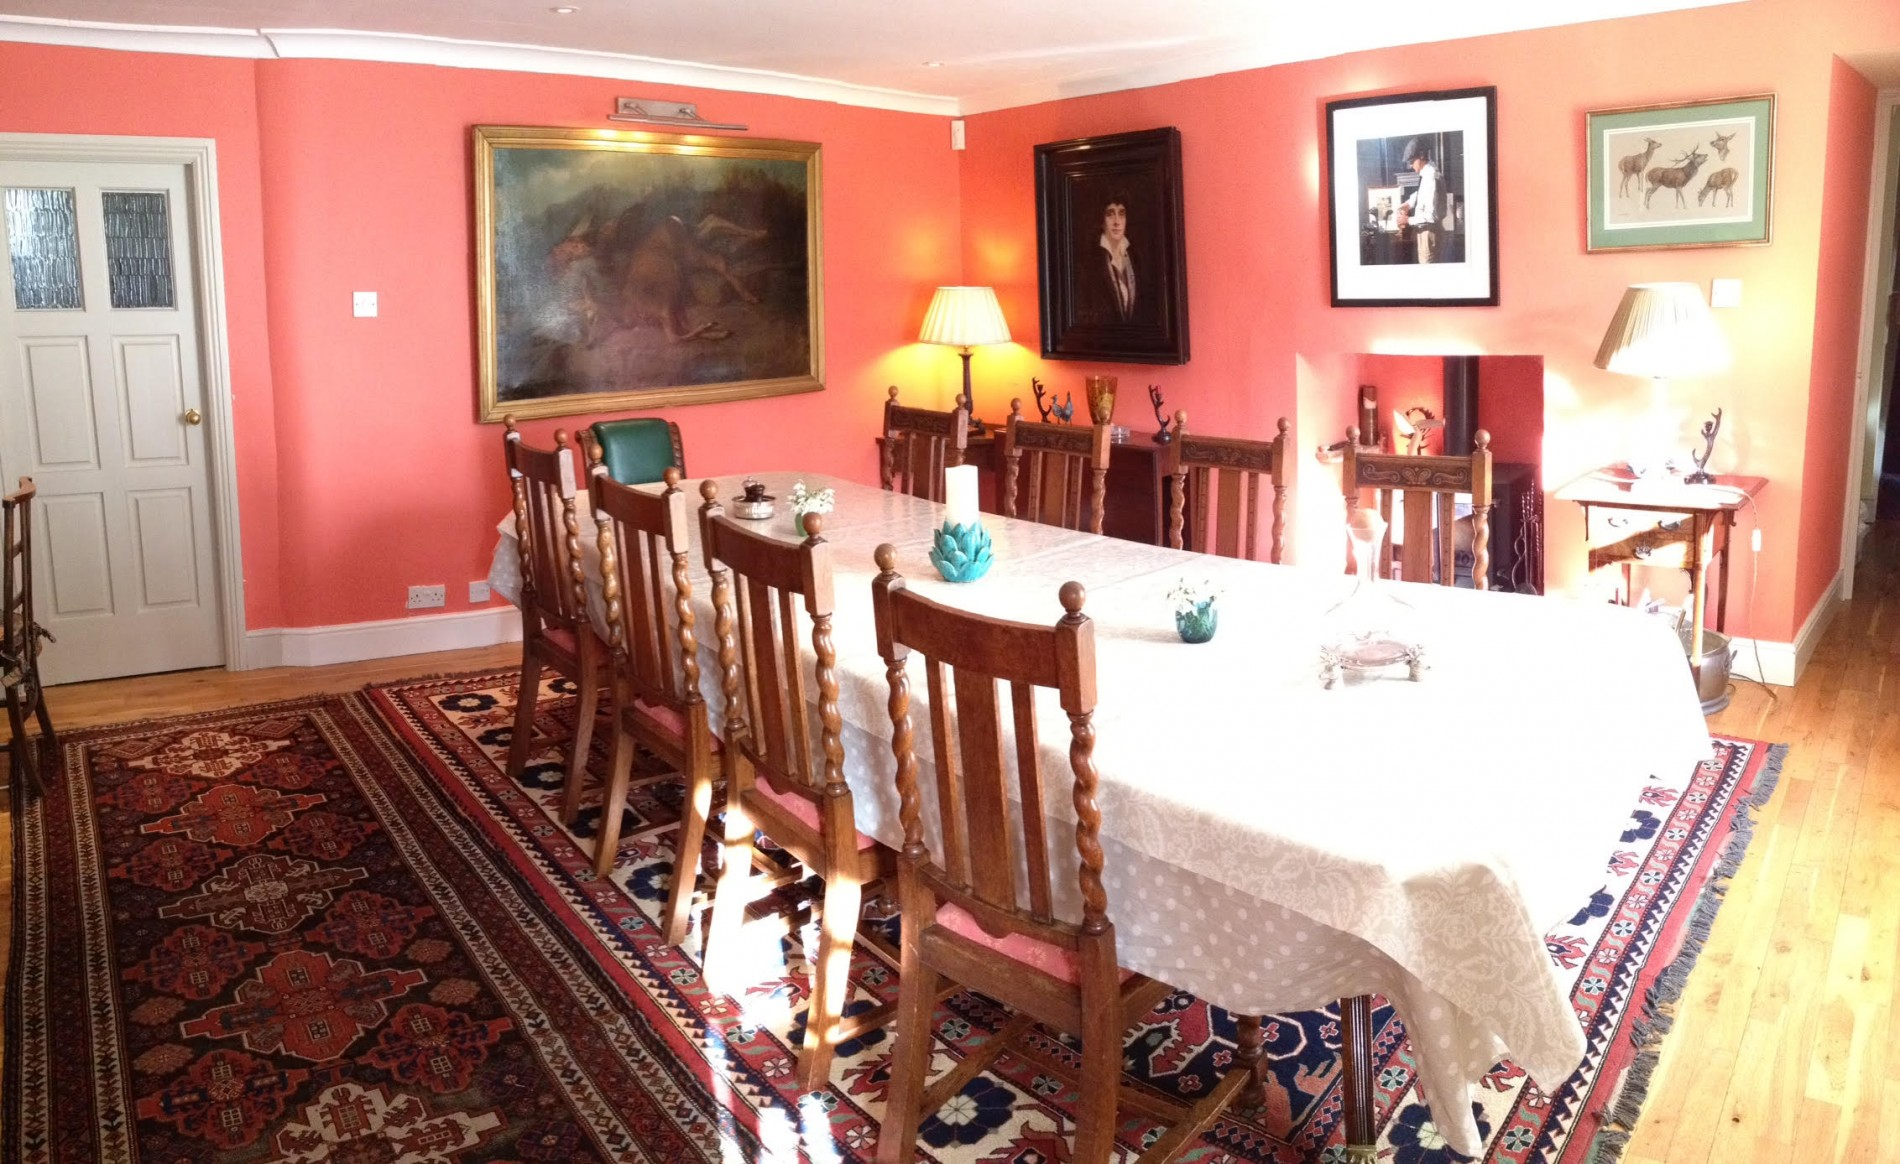 Breakfast is served in the Dining room at Park House